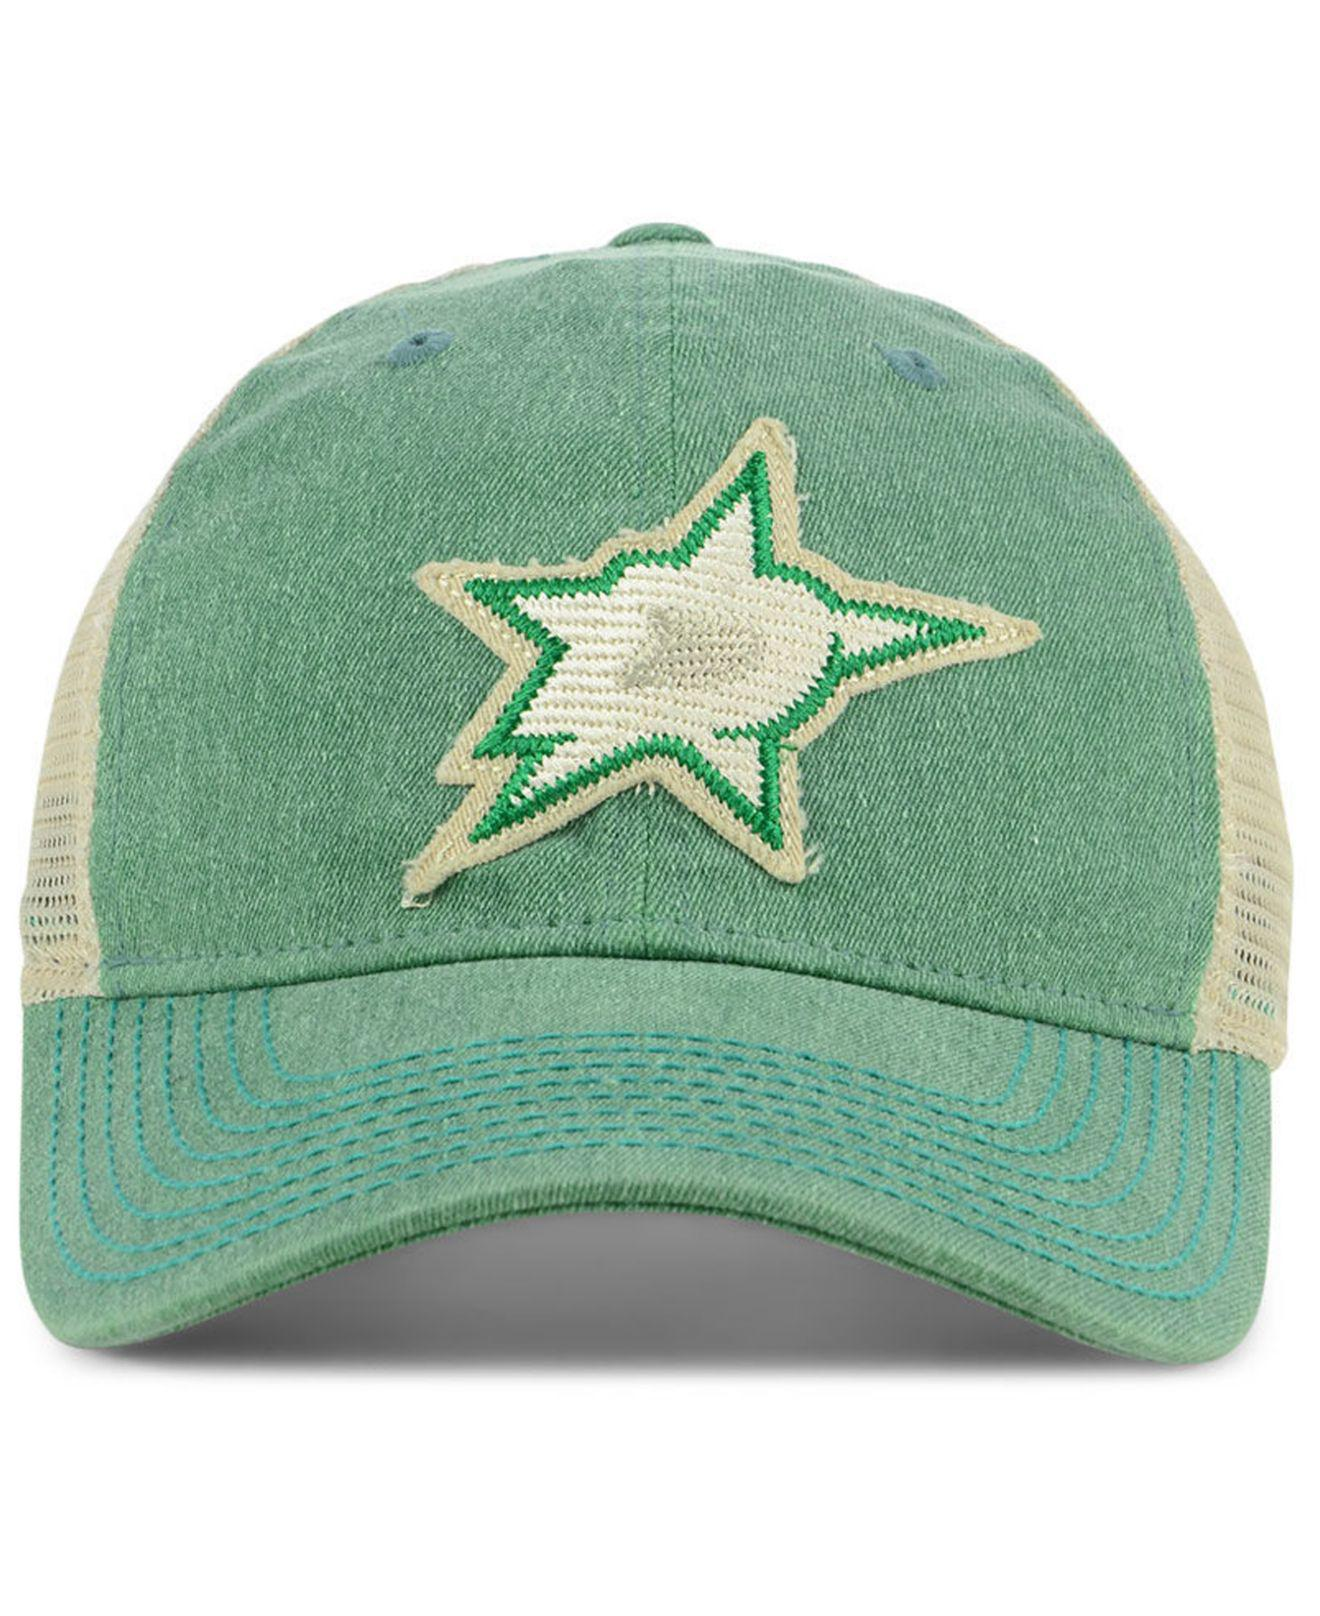 new arrival c5aa0 2028c ... germany lyst adidas dallas stars sun bleached slouch cap in green for  men save 25.925925925925924 68131